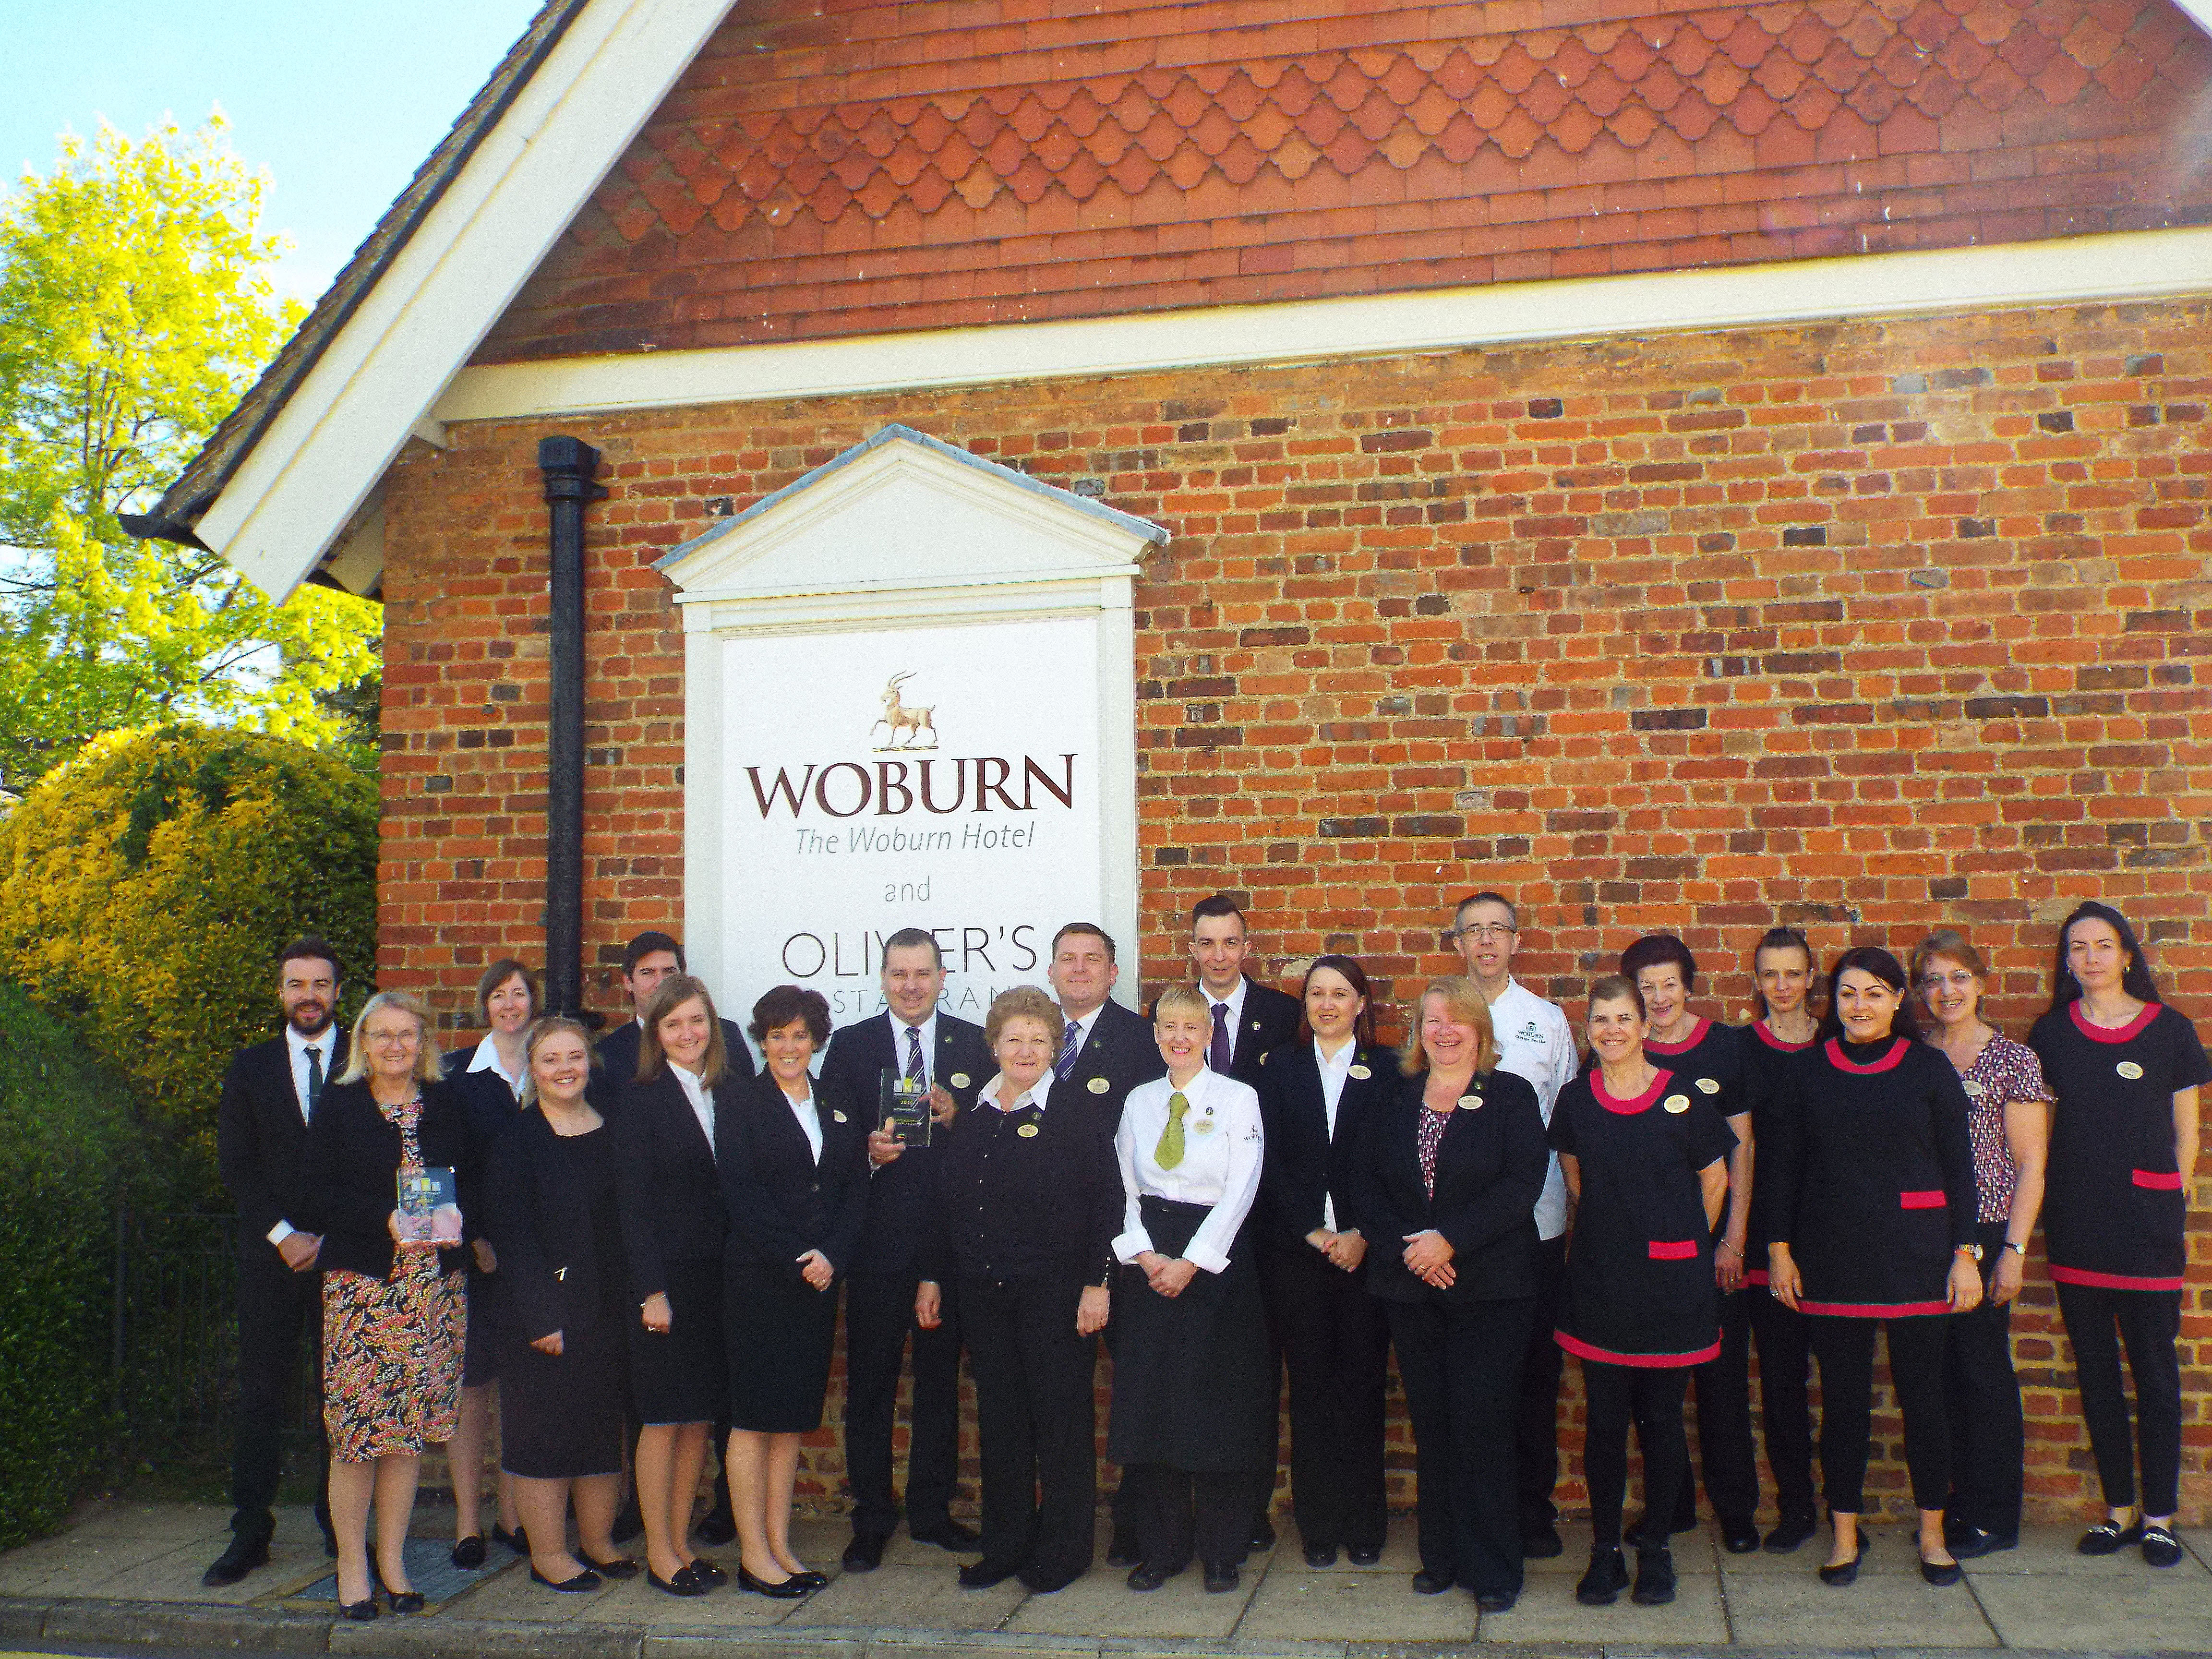 The Woburn Hotel & Olivier's restaurant wins public vote at Bedfordshire SME Business Awards